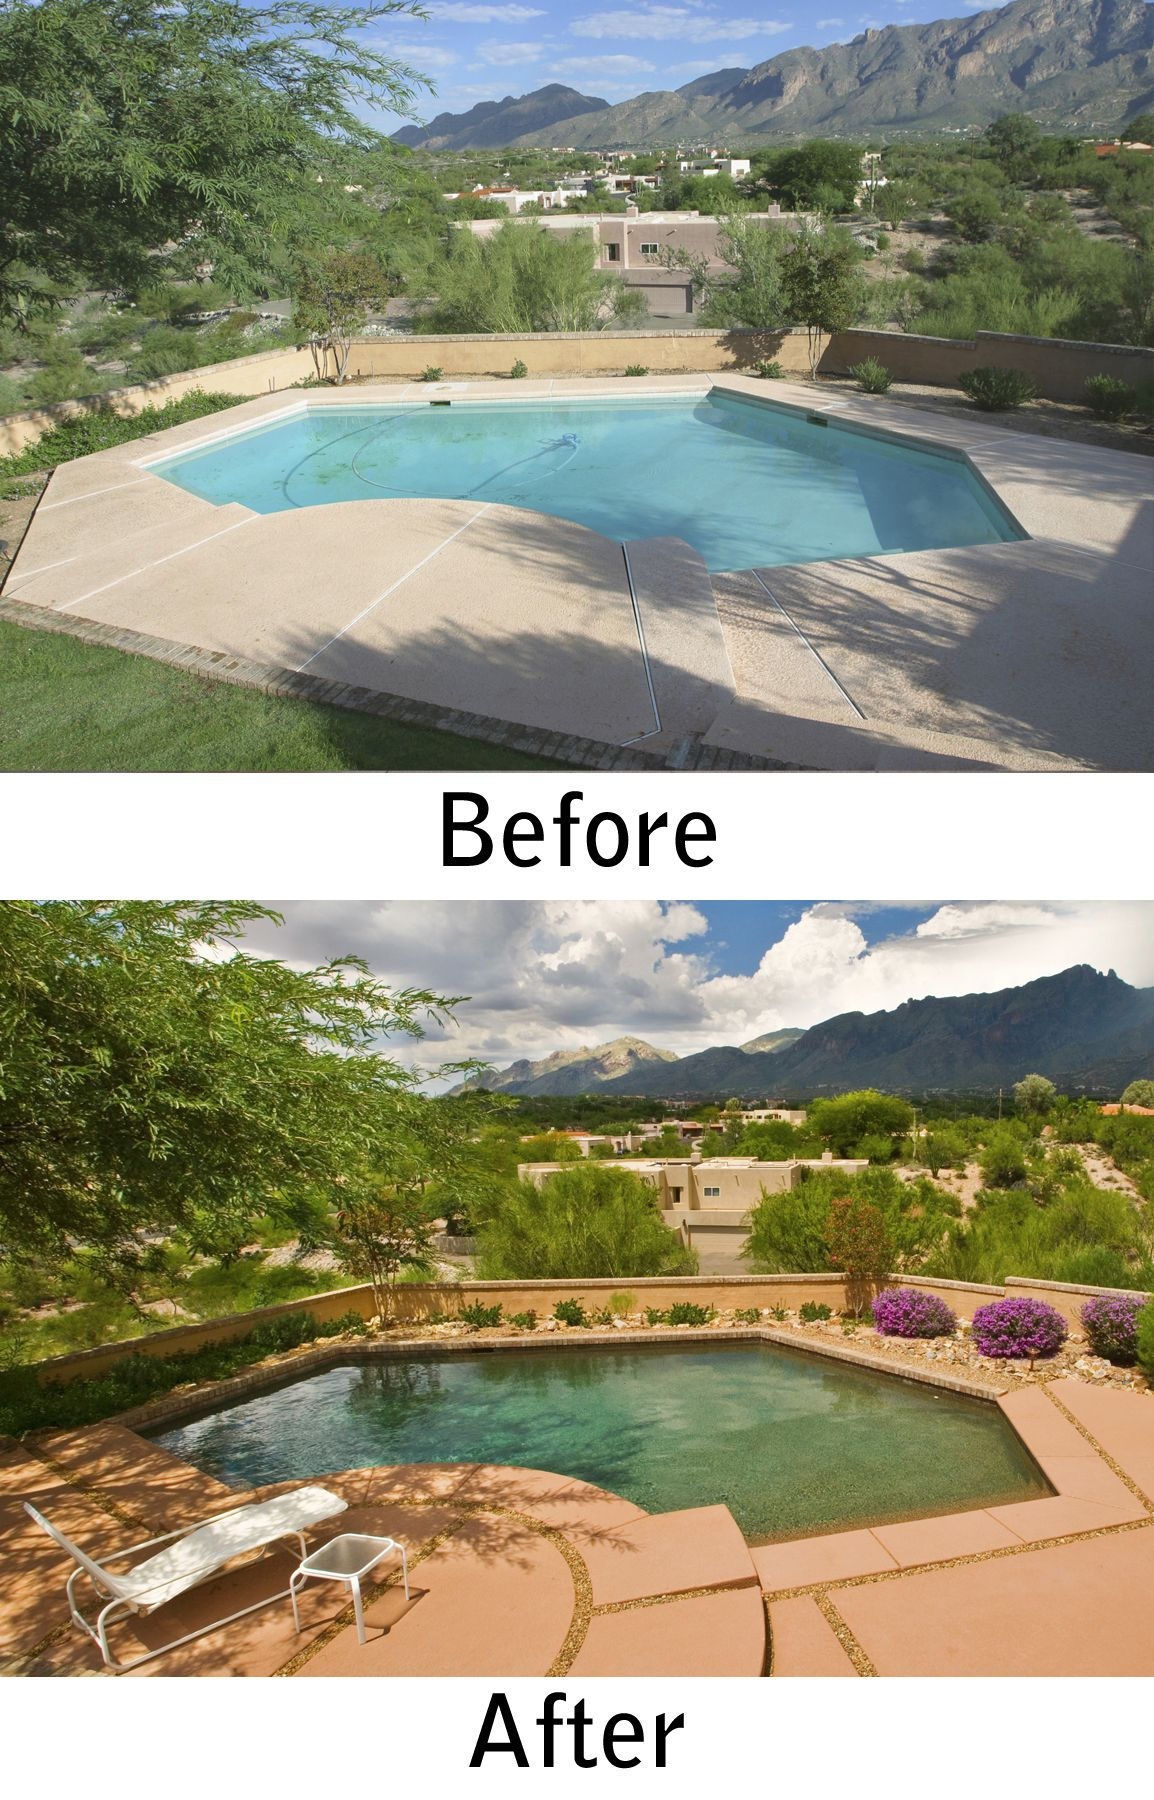 Tucson Pool Renovation by Patio Pools and Spas. & Tucson Pool Renovation by Patio Pools and Spas. | Poolside | Patio ...